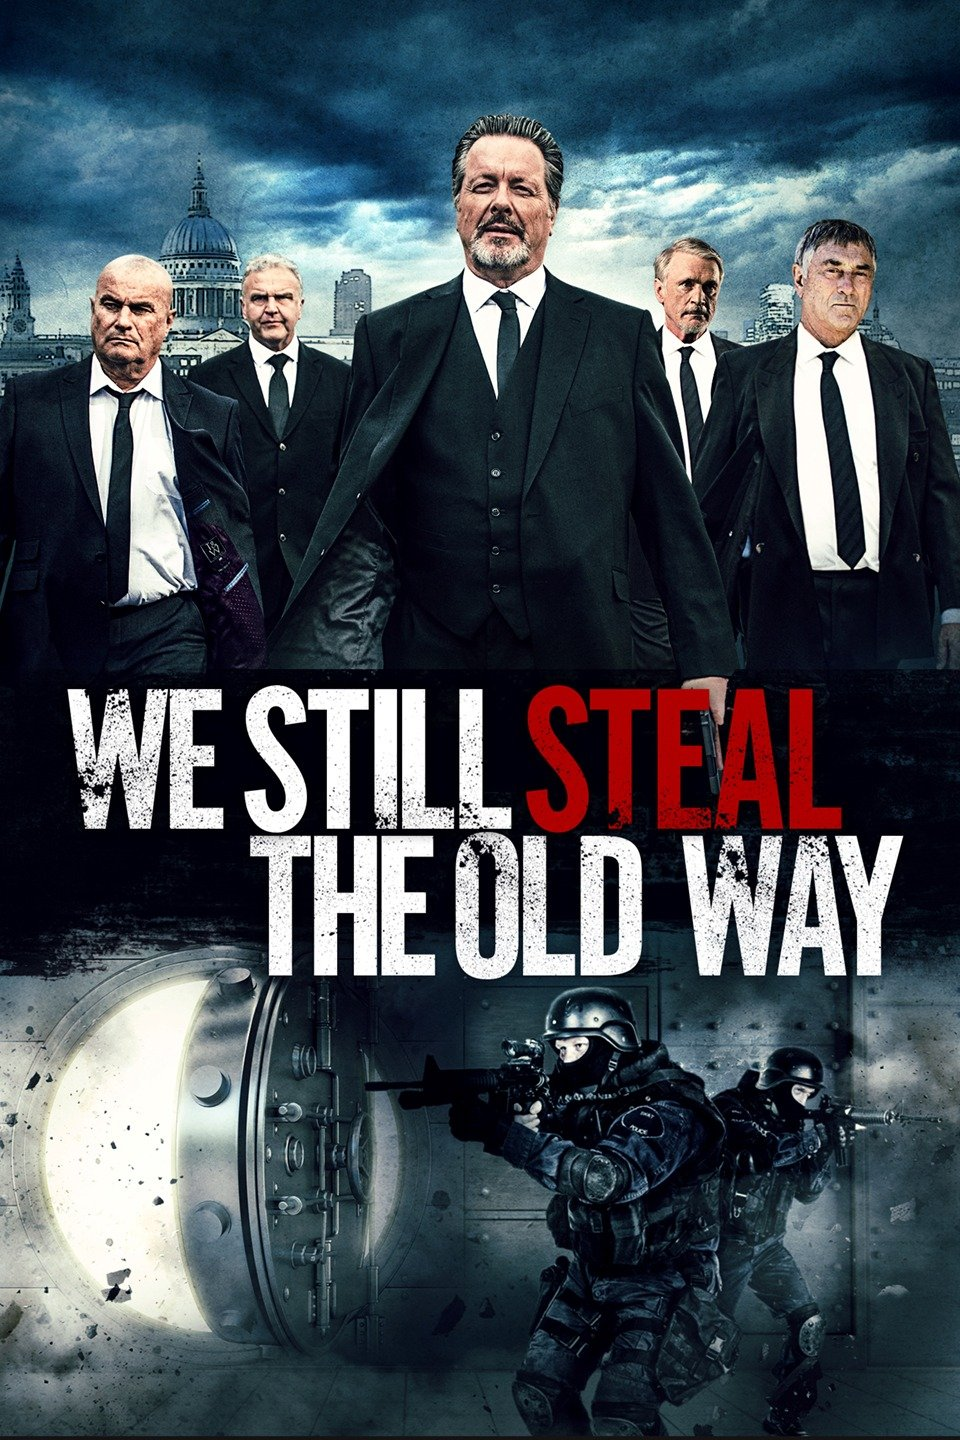 We Still Steal the Old Way-We Still Steal the Old Way